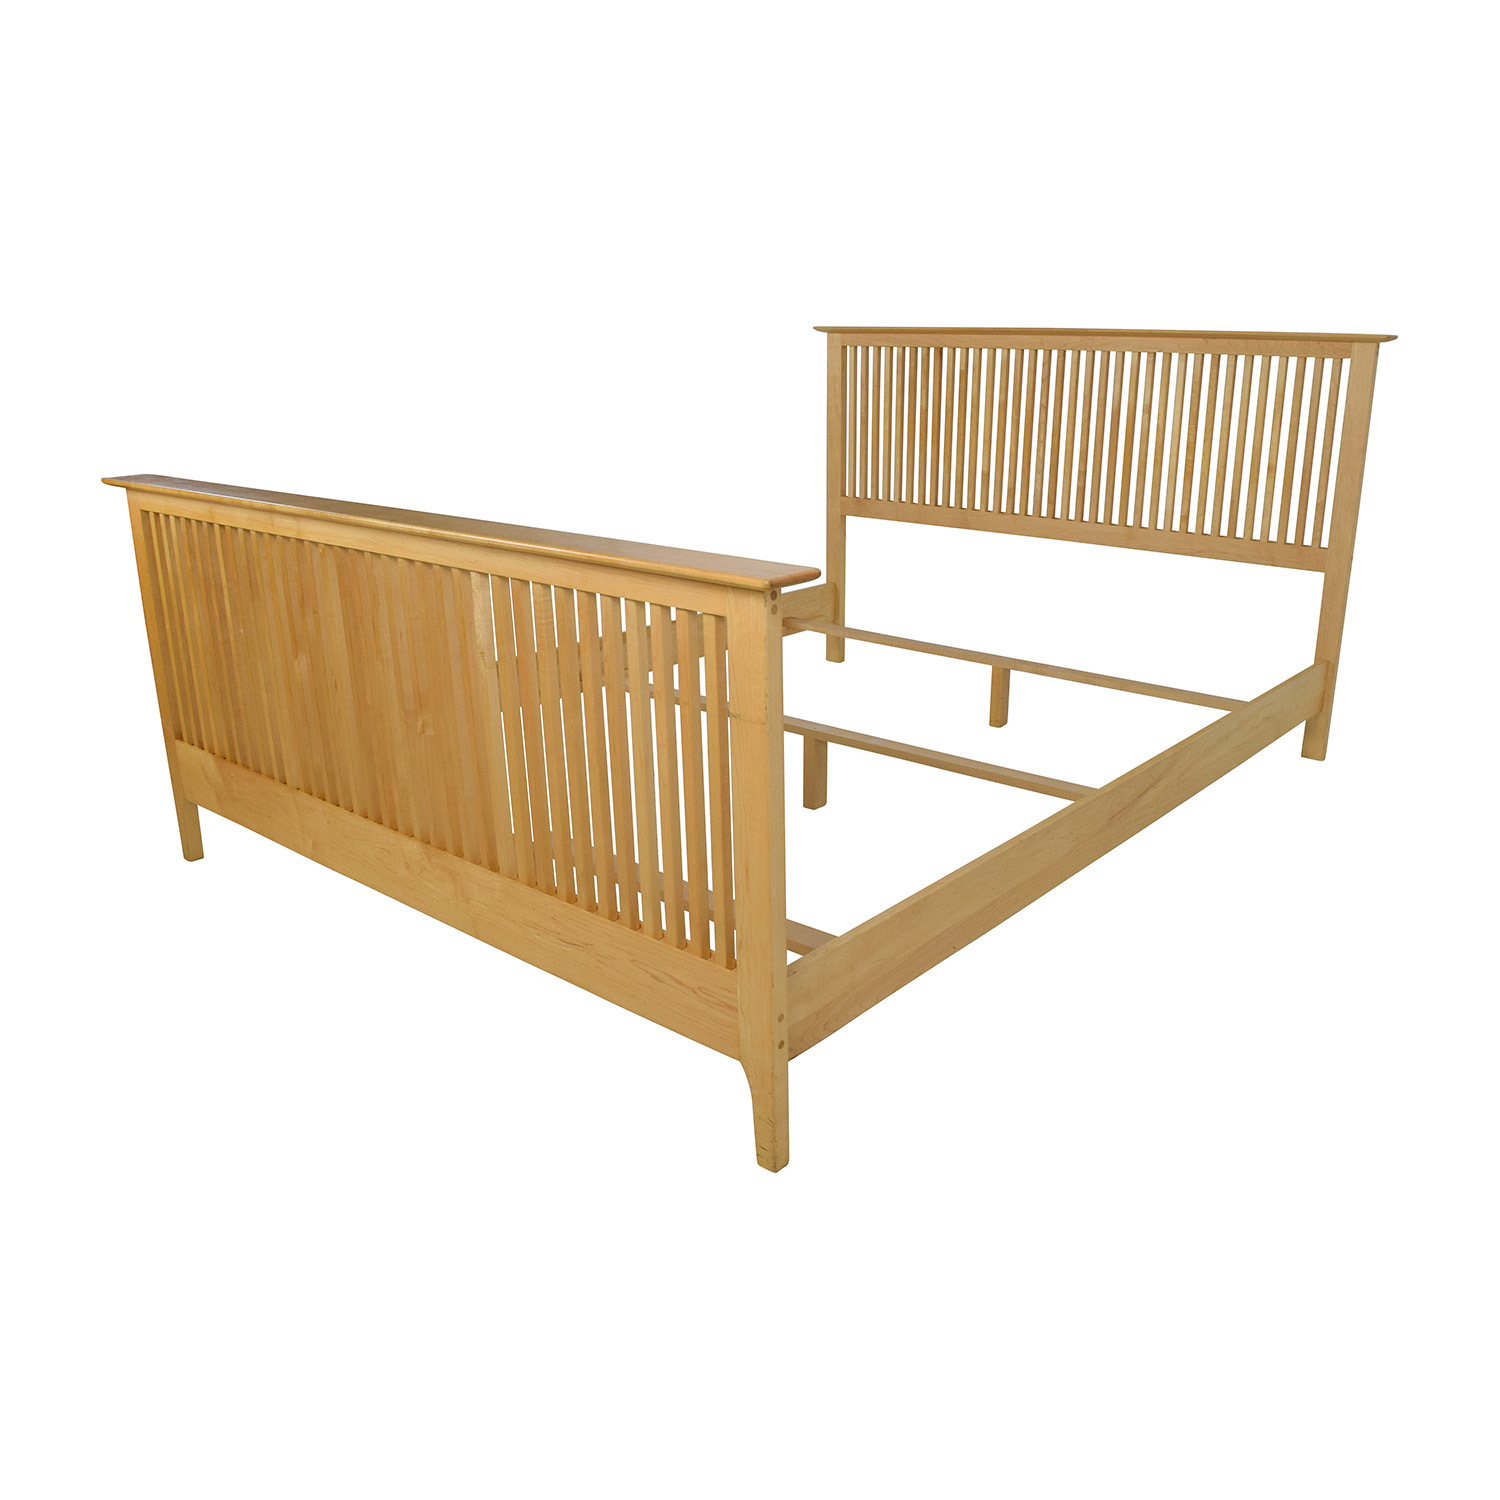 82% OFF - Copeland Copeland Solid Maple Shaker Queen Bed Frame / Beds